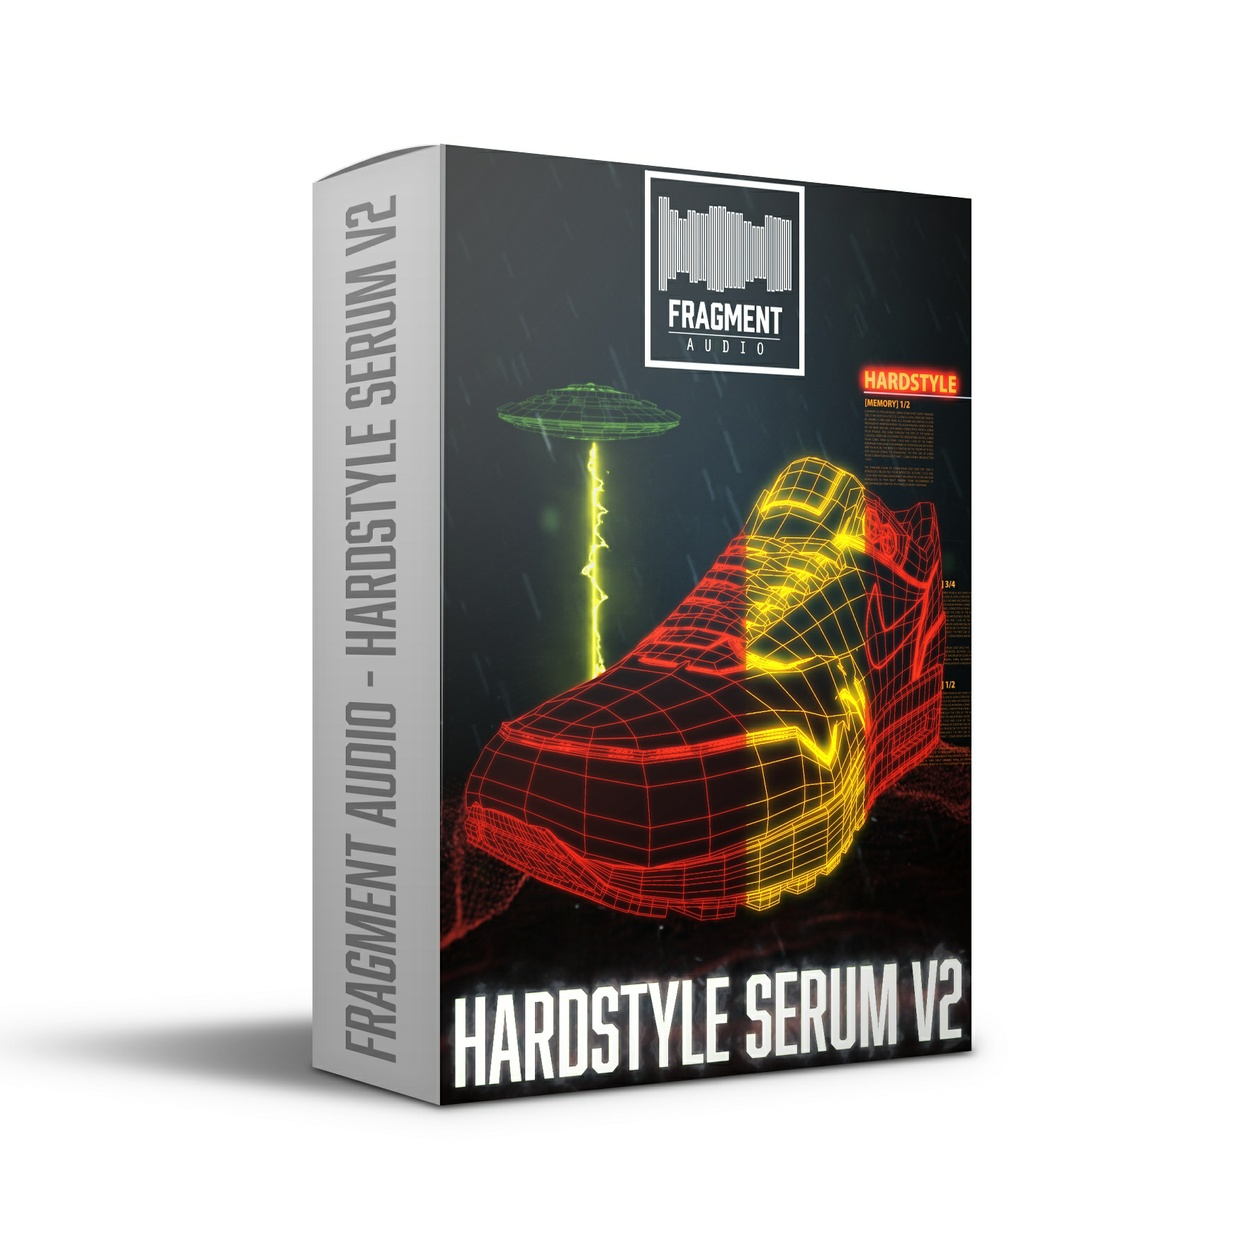 Hardstyle Serum Vol.2